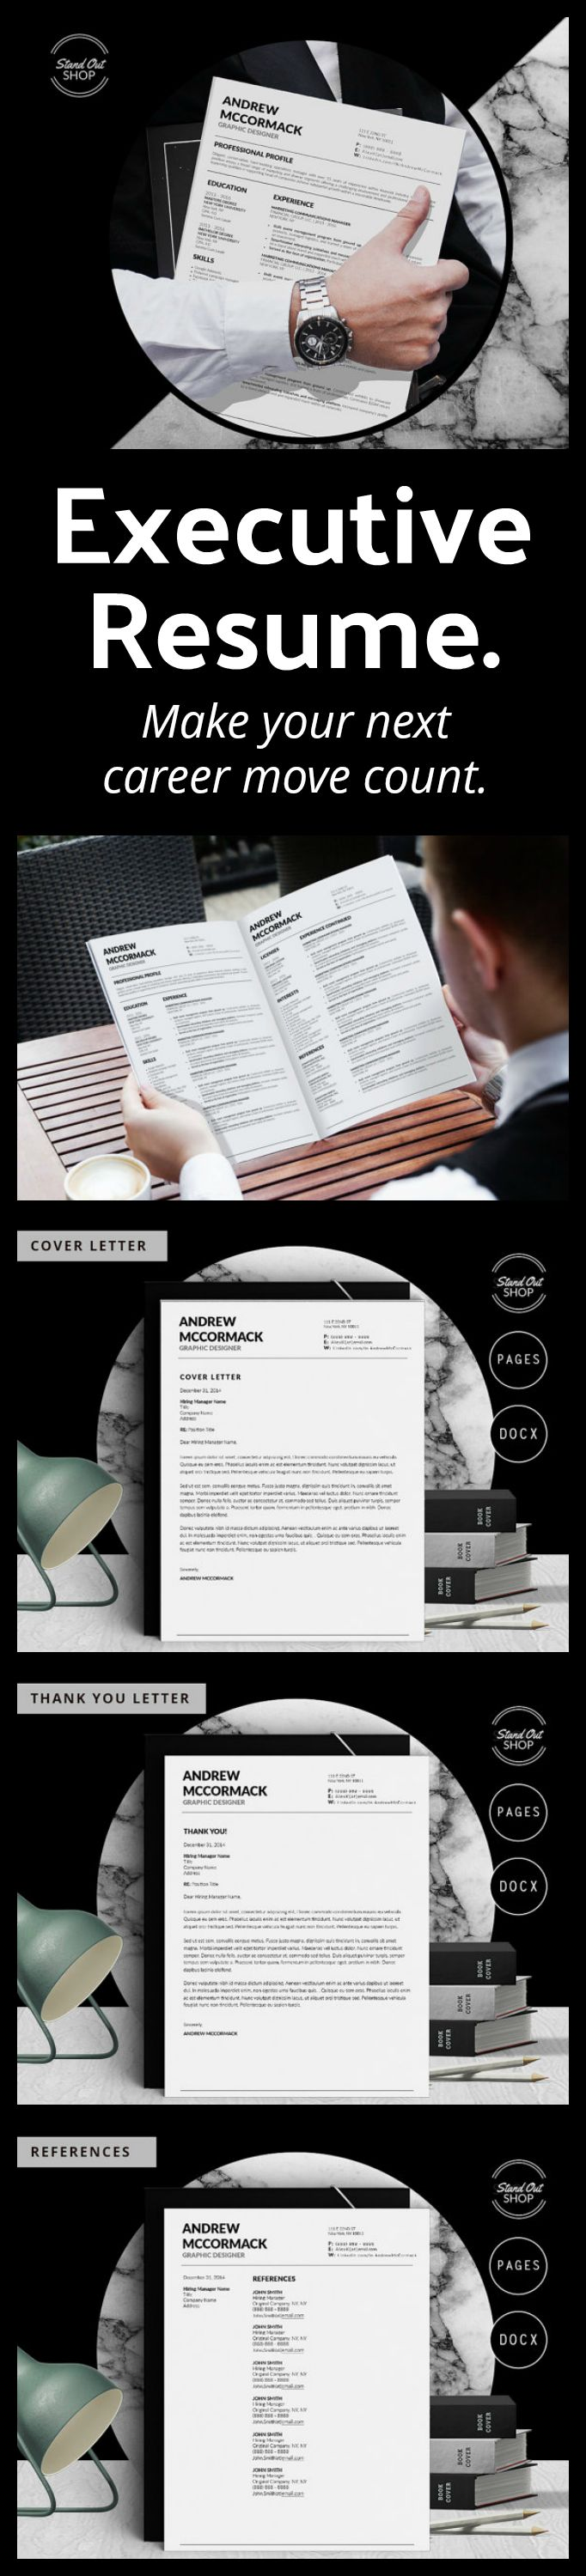 THIS is a standout executive resume! Use it to help your man advance his career.  Andrew McCormack Modern Resume Template for Microsoft Word and Apple Pages // A4 and US Letter Sizes | #resume #resumetemplate #career #cv #cvtemplate #coverletter #ad